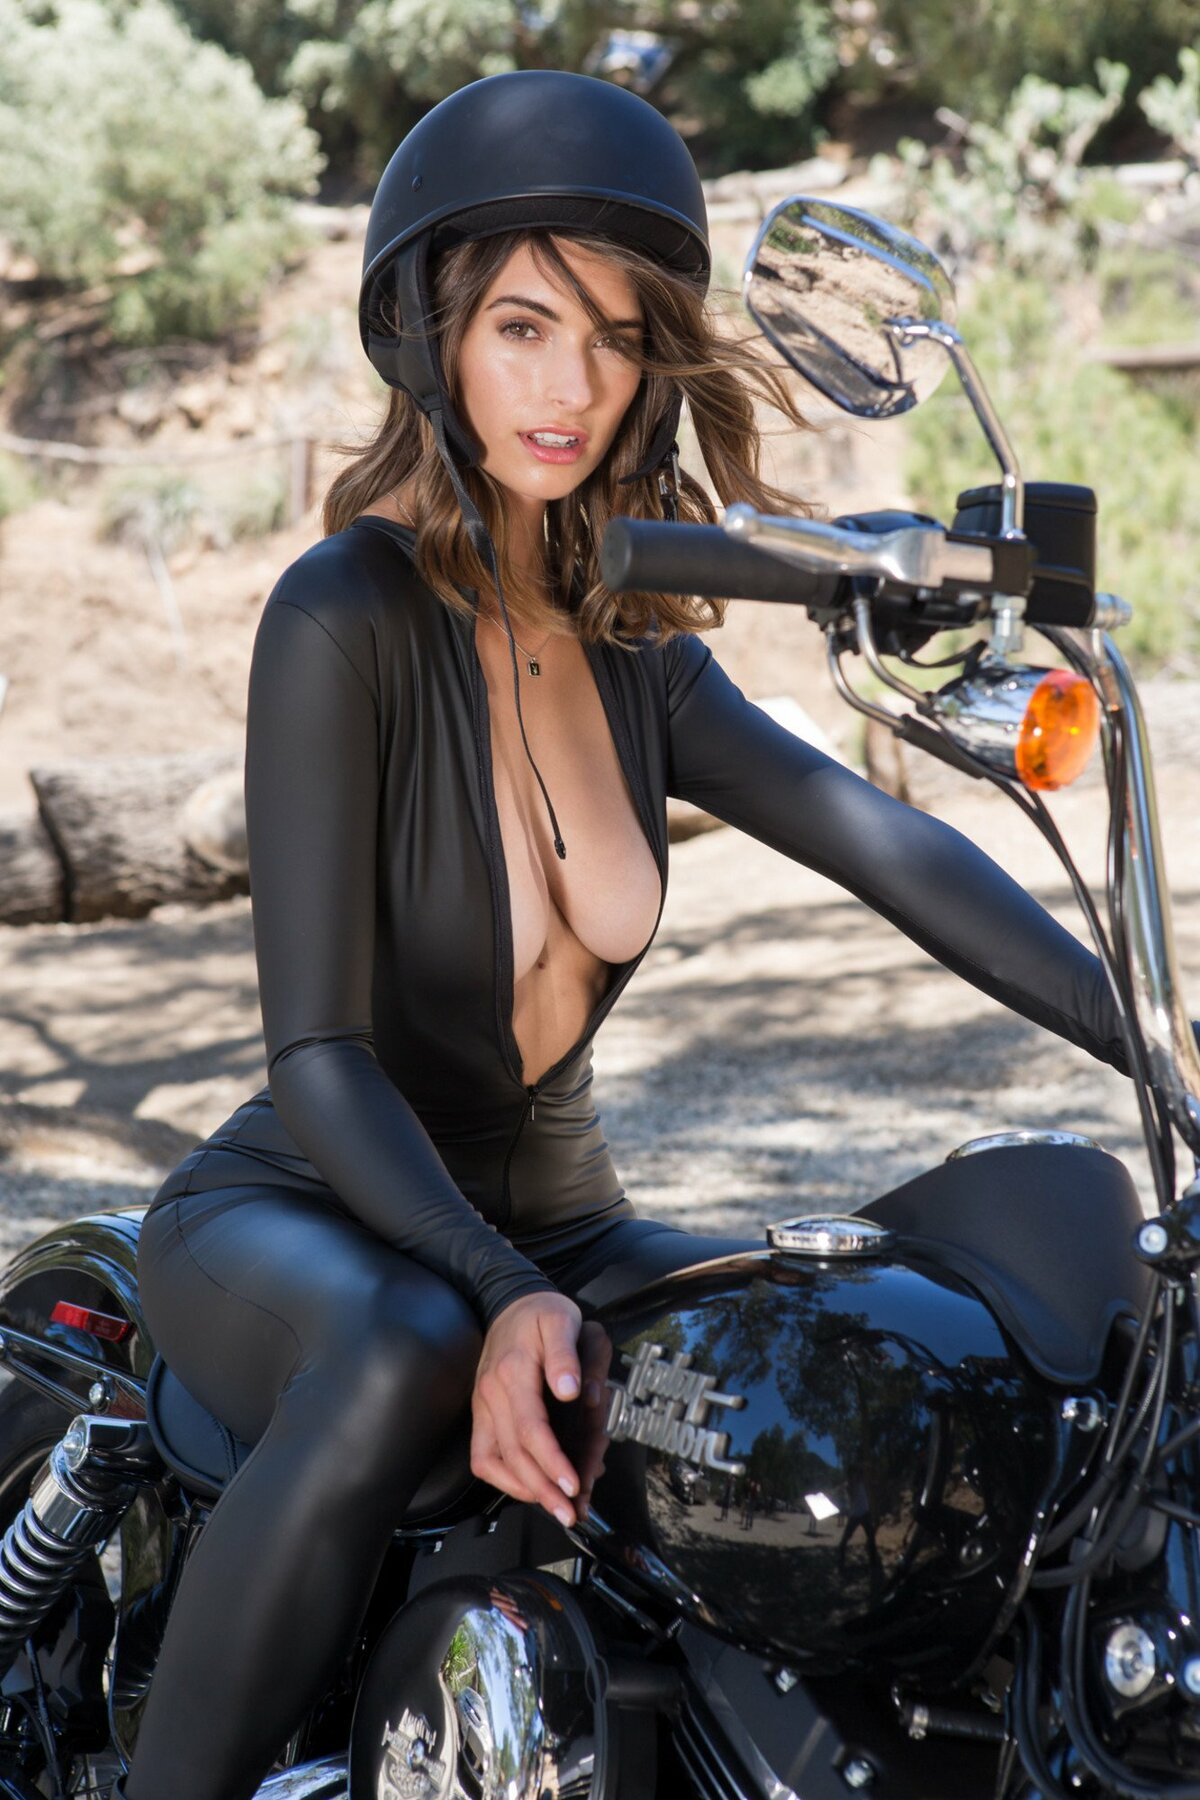 Motorcycle and nude female — pic 3